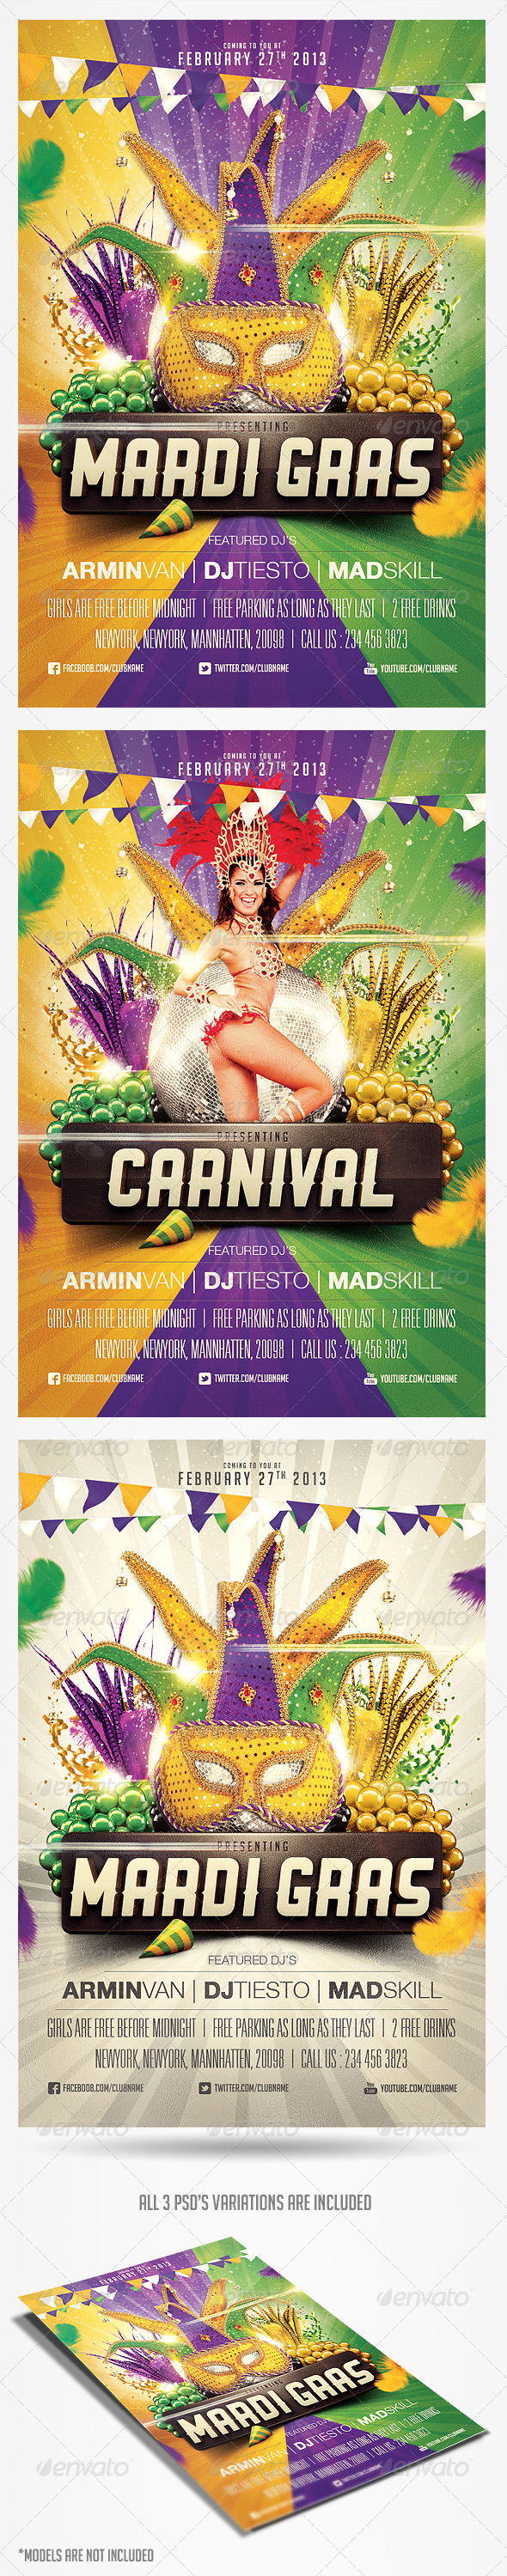 mardi gras carnival flyer templatesaltshaker911 | graphicriver, Powerpoint templates